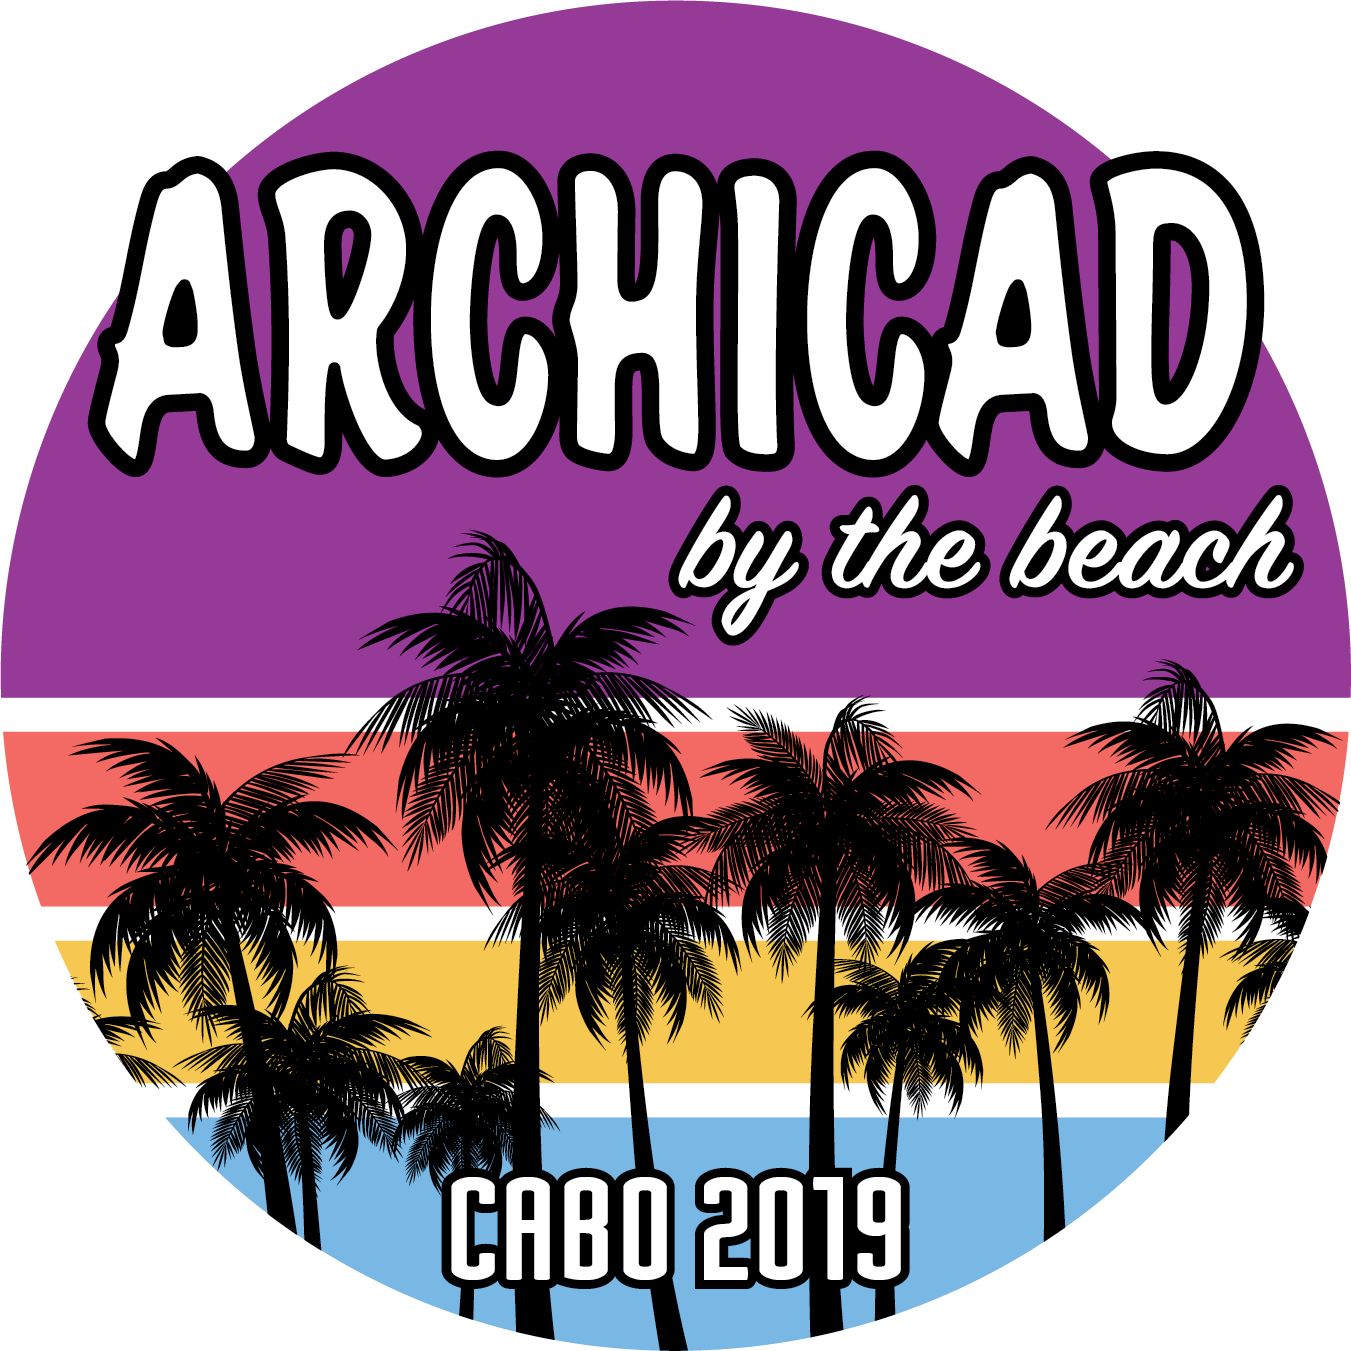 Sessions — ARCHICAD by the Beach